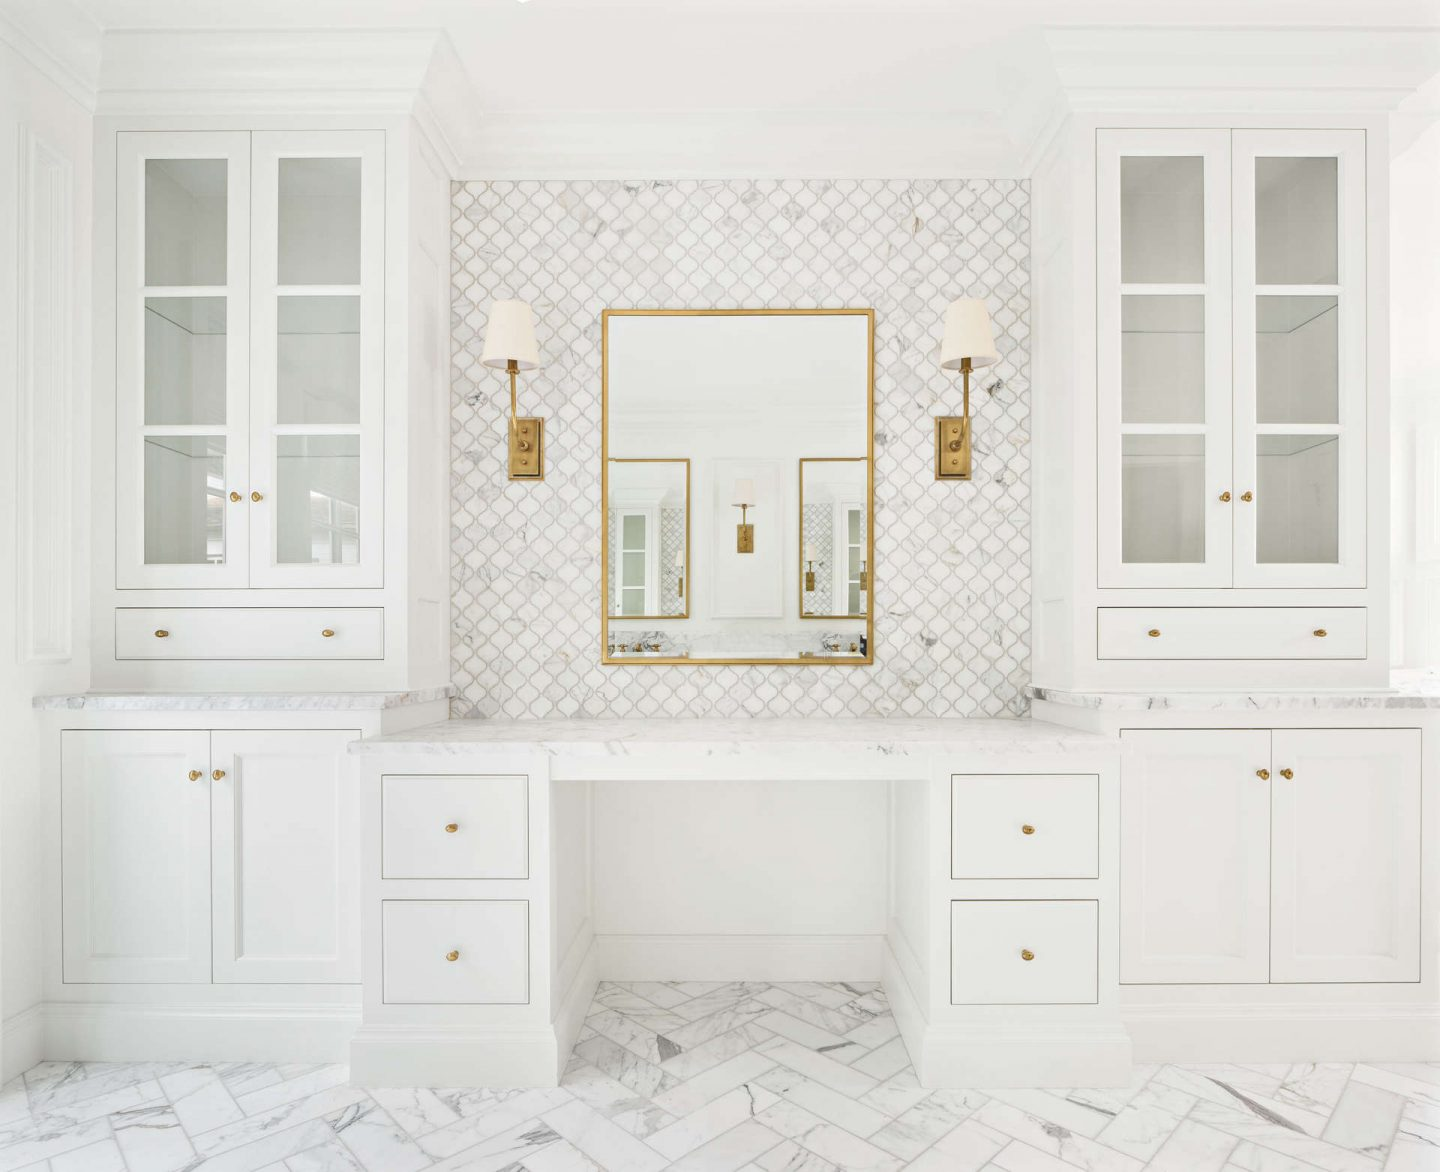 White calacatta marble luxurious bathroom with makeup area. #thefoxgroup #luxuriousbathroom #calacattamarble